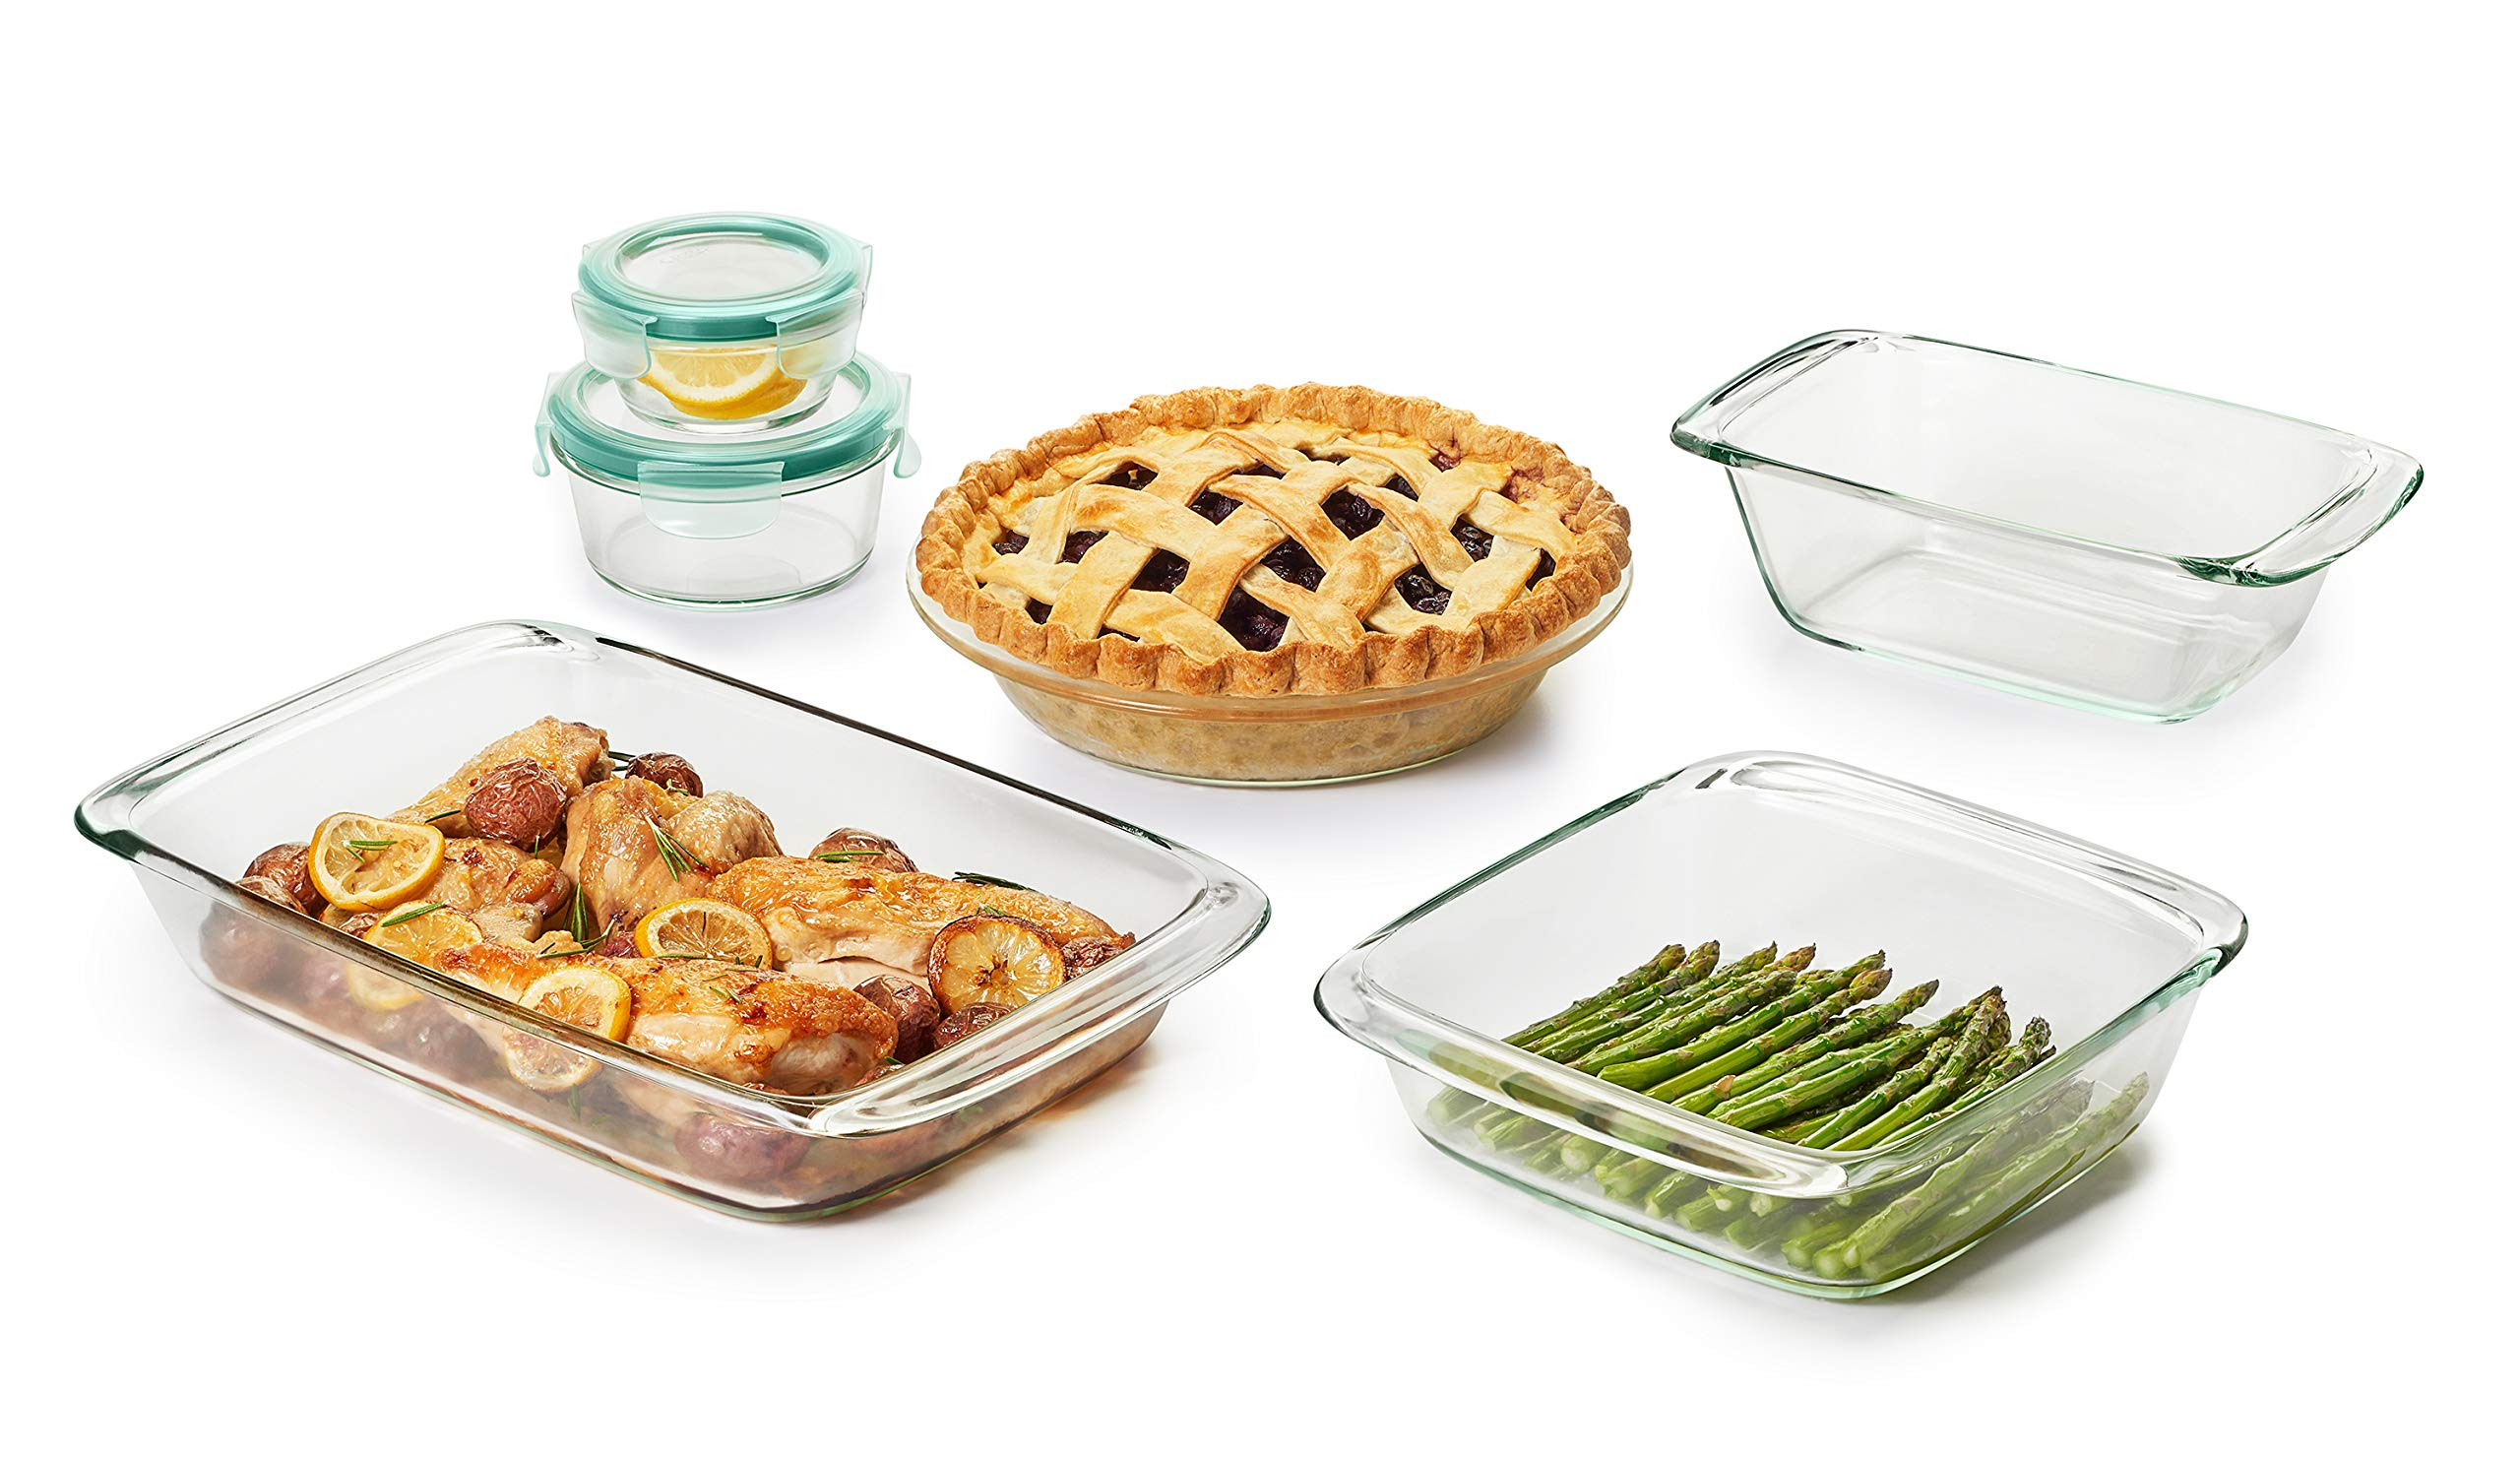 OXO Good Grips 8 Piece Freezer-to-Oven Safe Glass Bake, Serve and Store Set by OXO (Image #2)